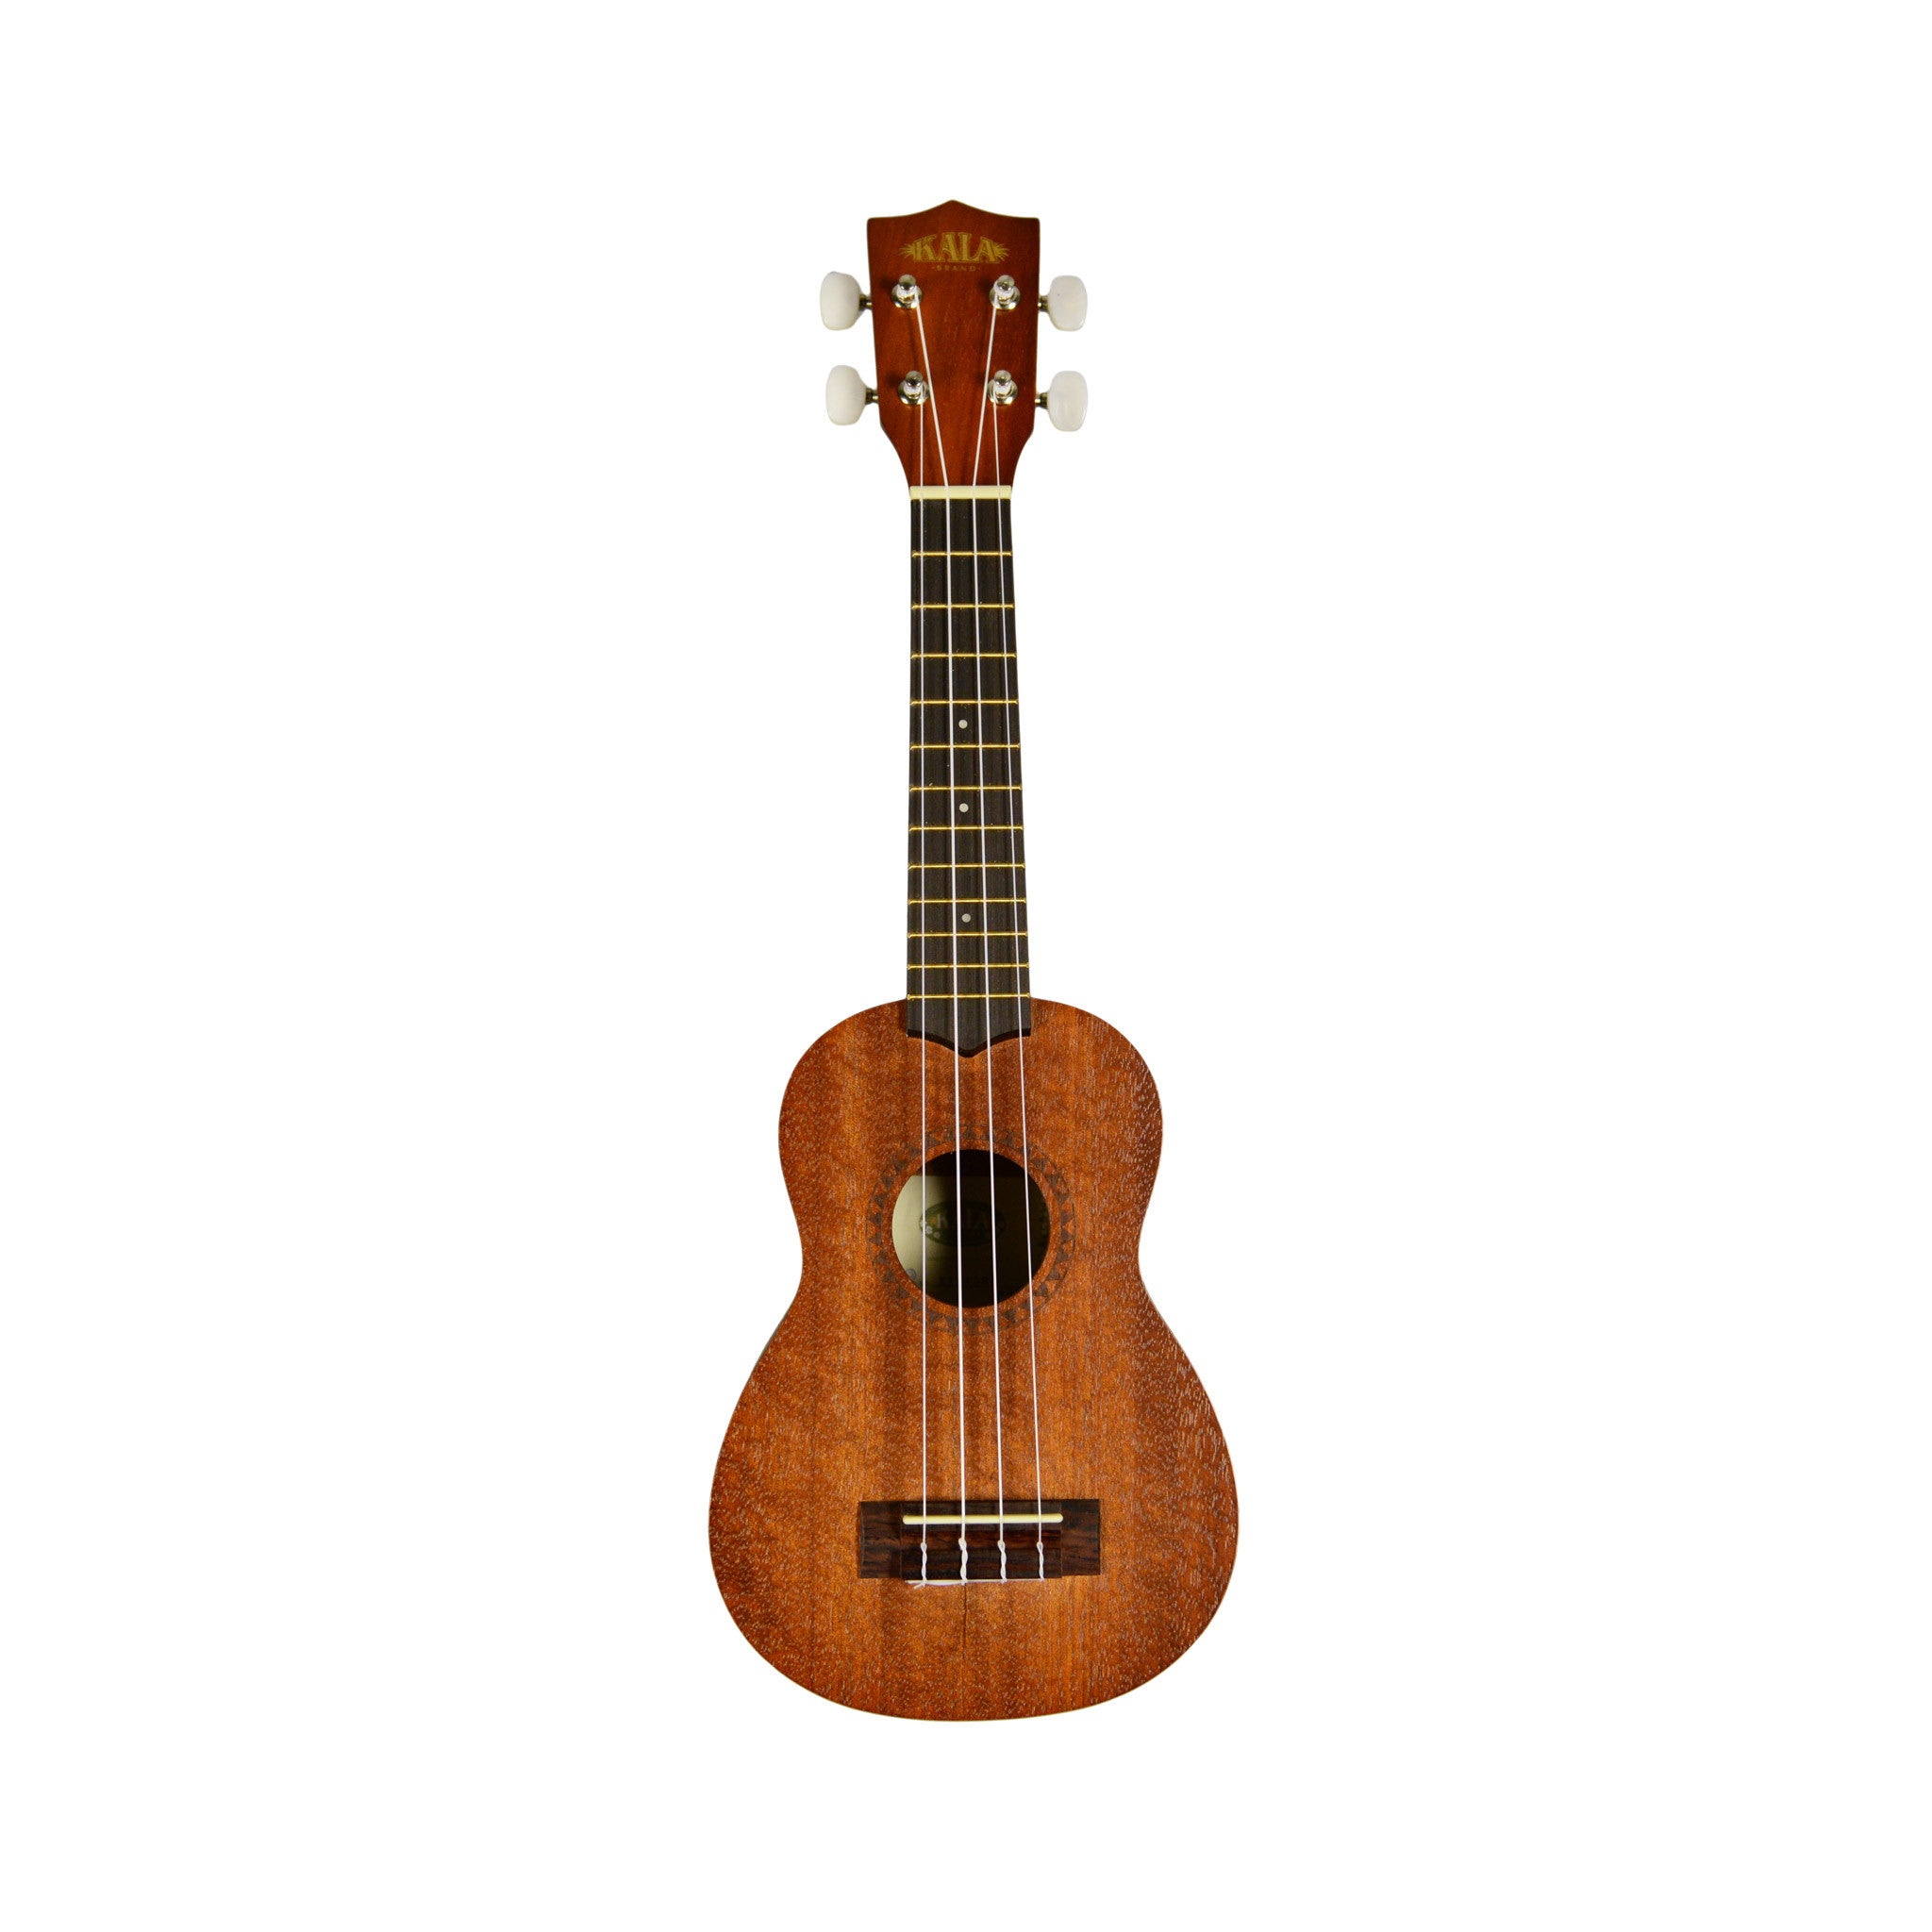 kala brand mahogany soprano ukulele groundswell supply. Black Bedroom Furniture Sets. Home Design Ideas